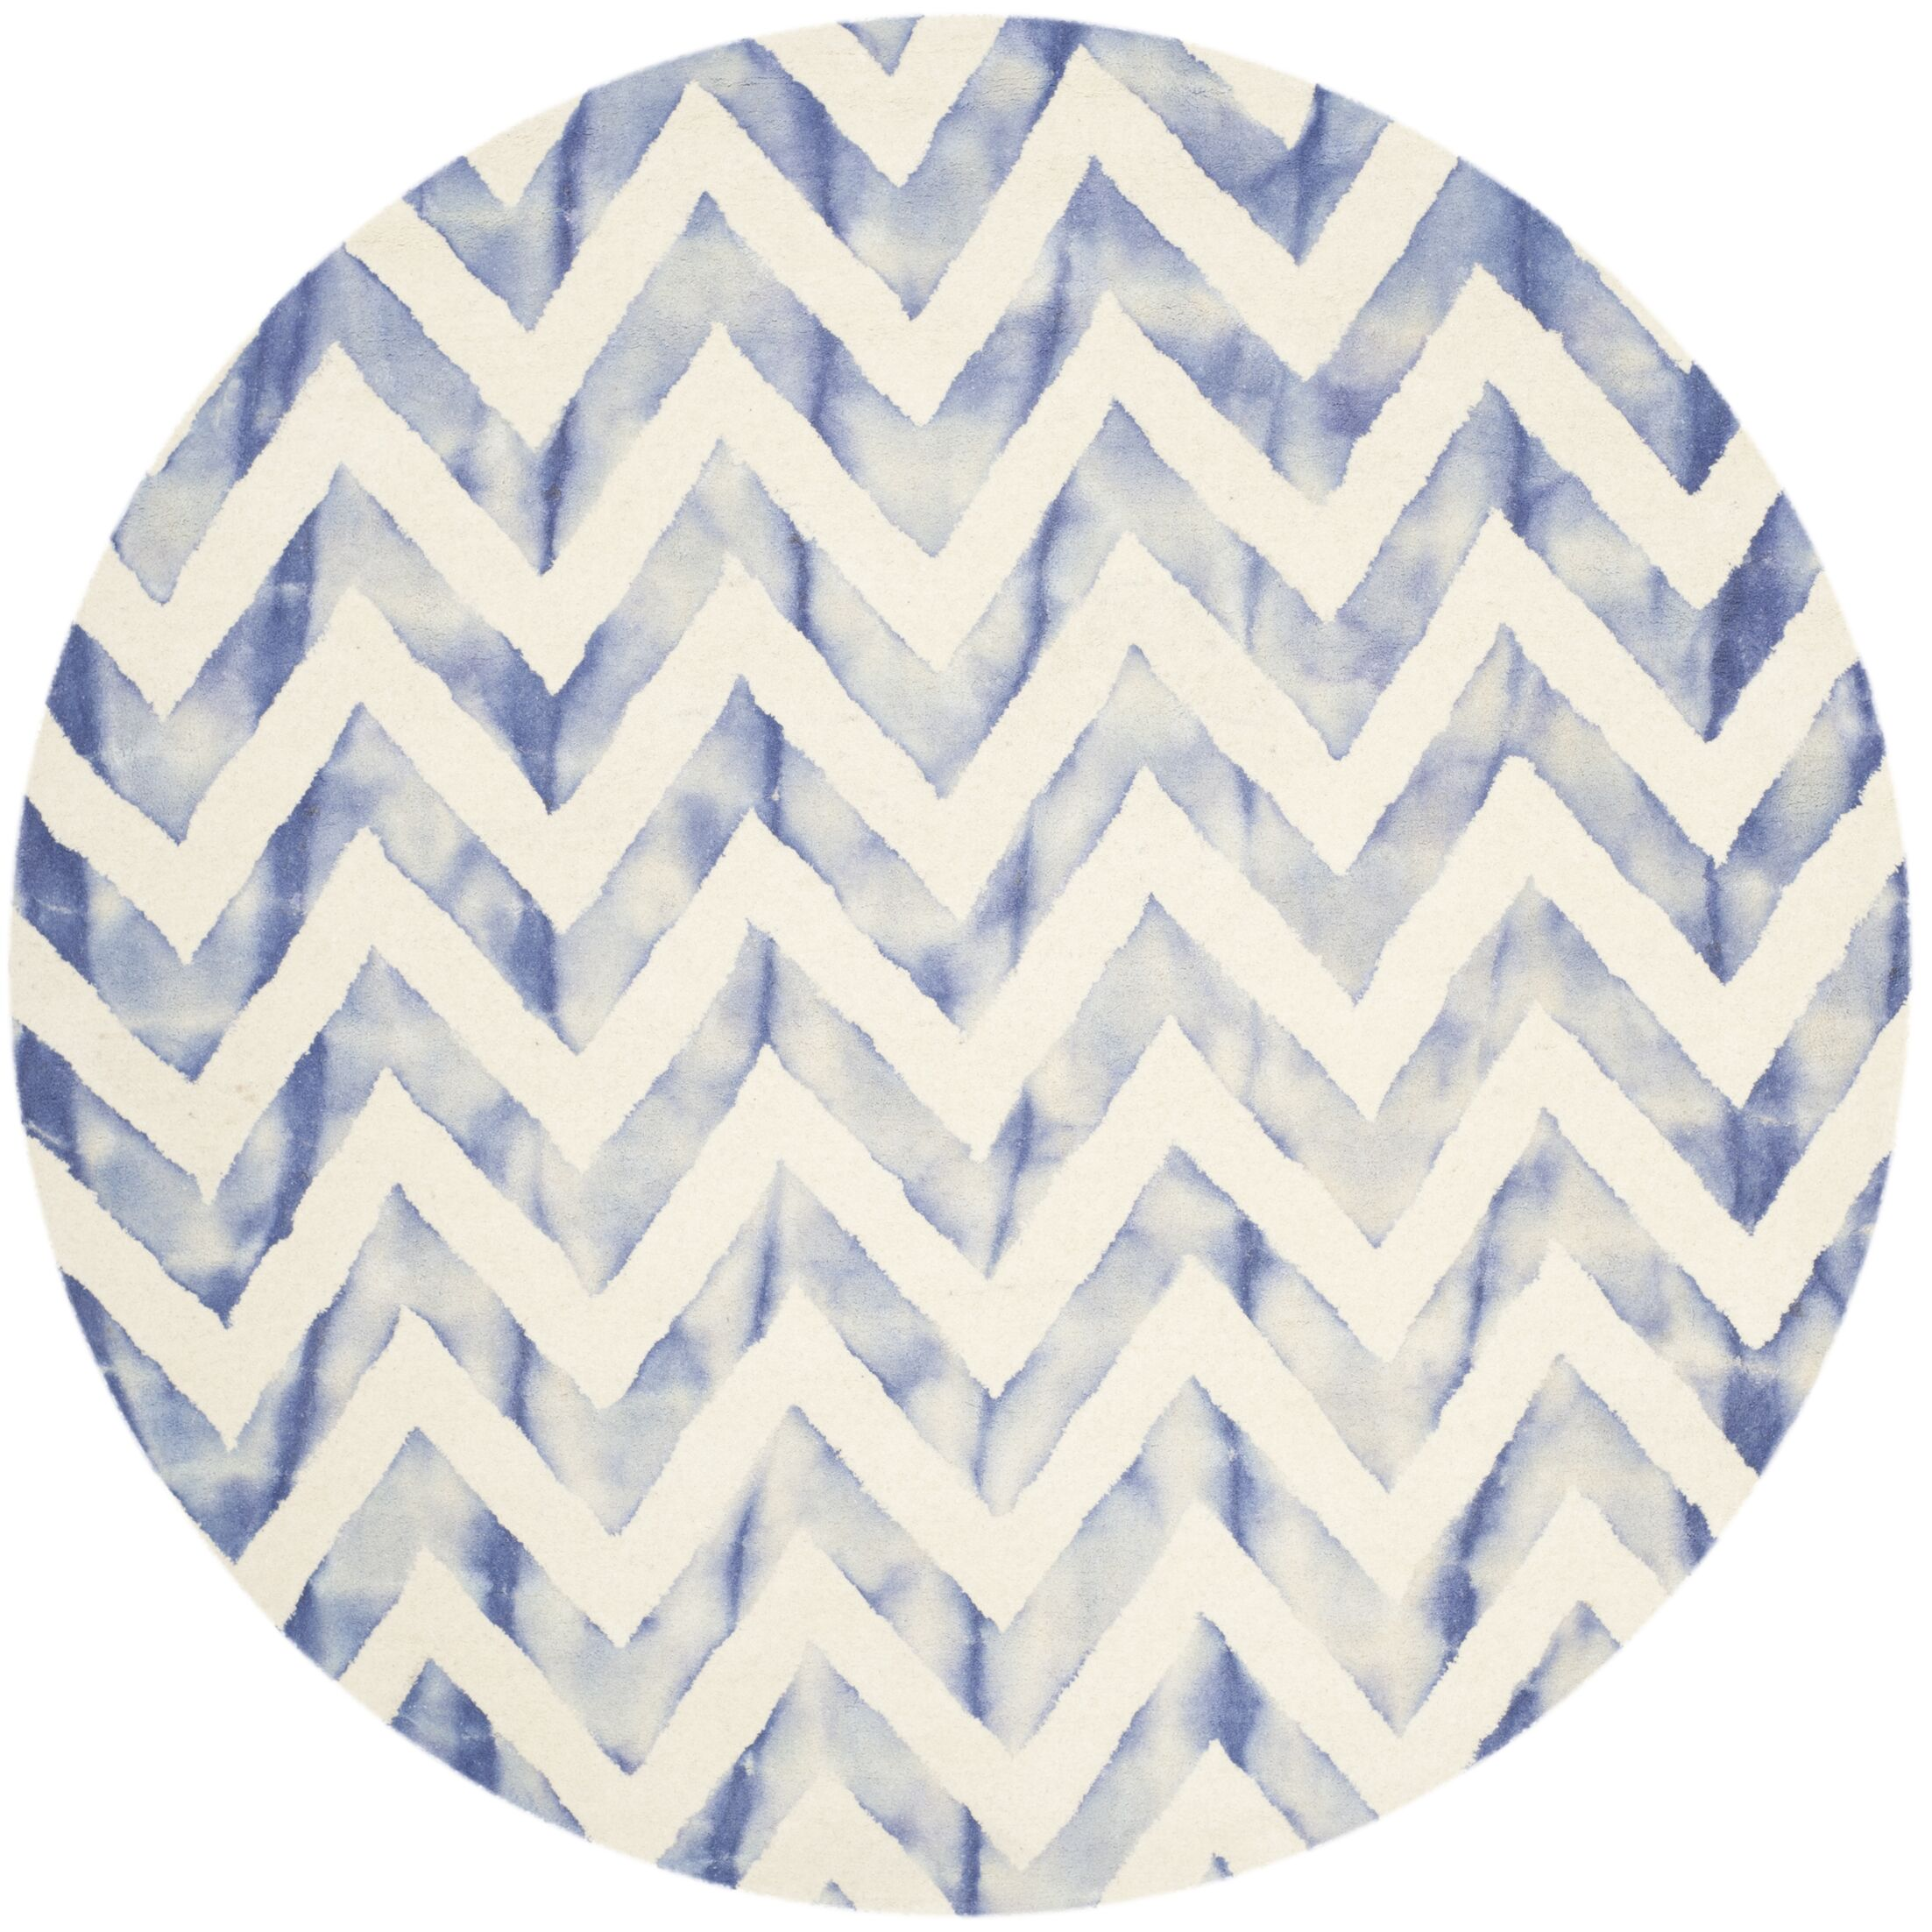 Chou Ivory/Blue Area Rug Rug Size: Rectangle 3' x 5'